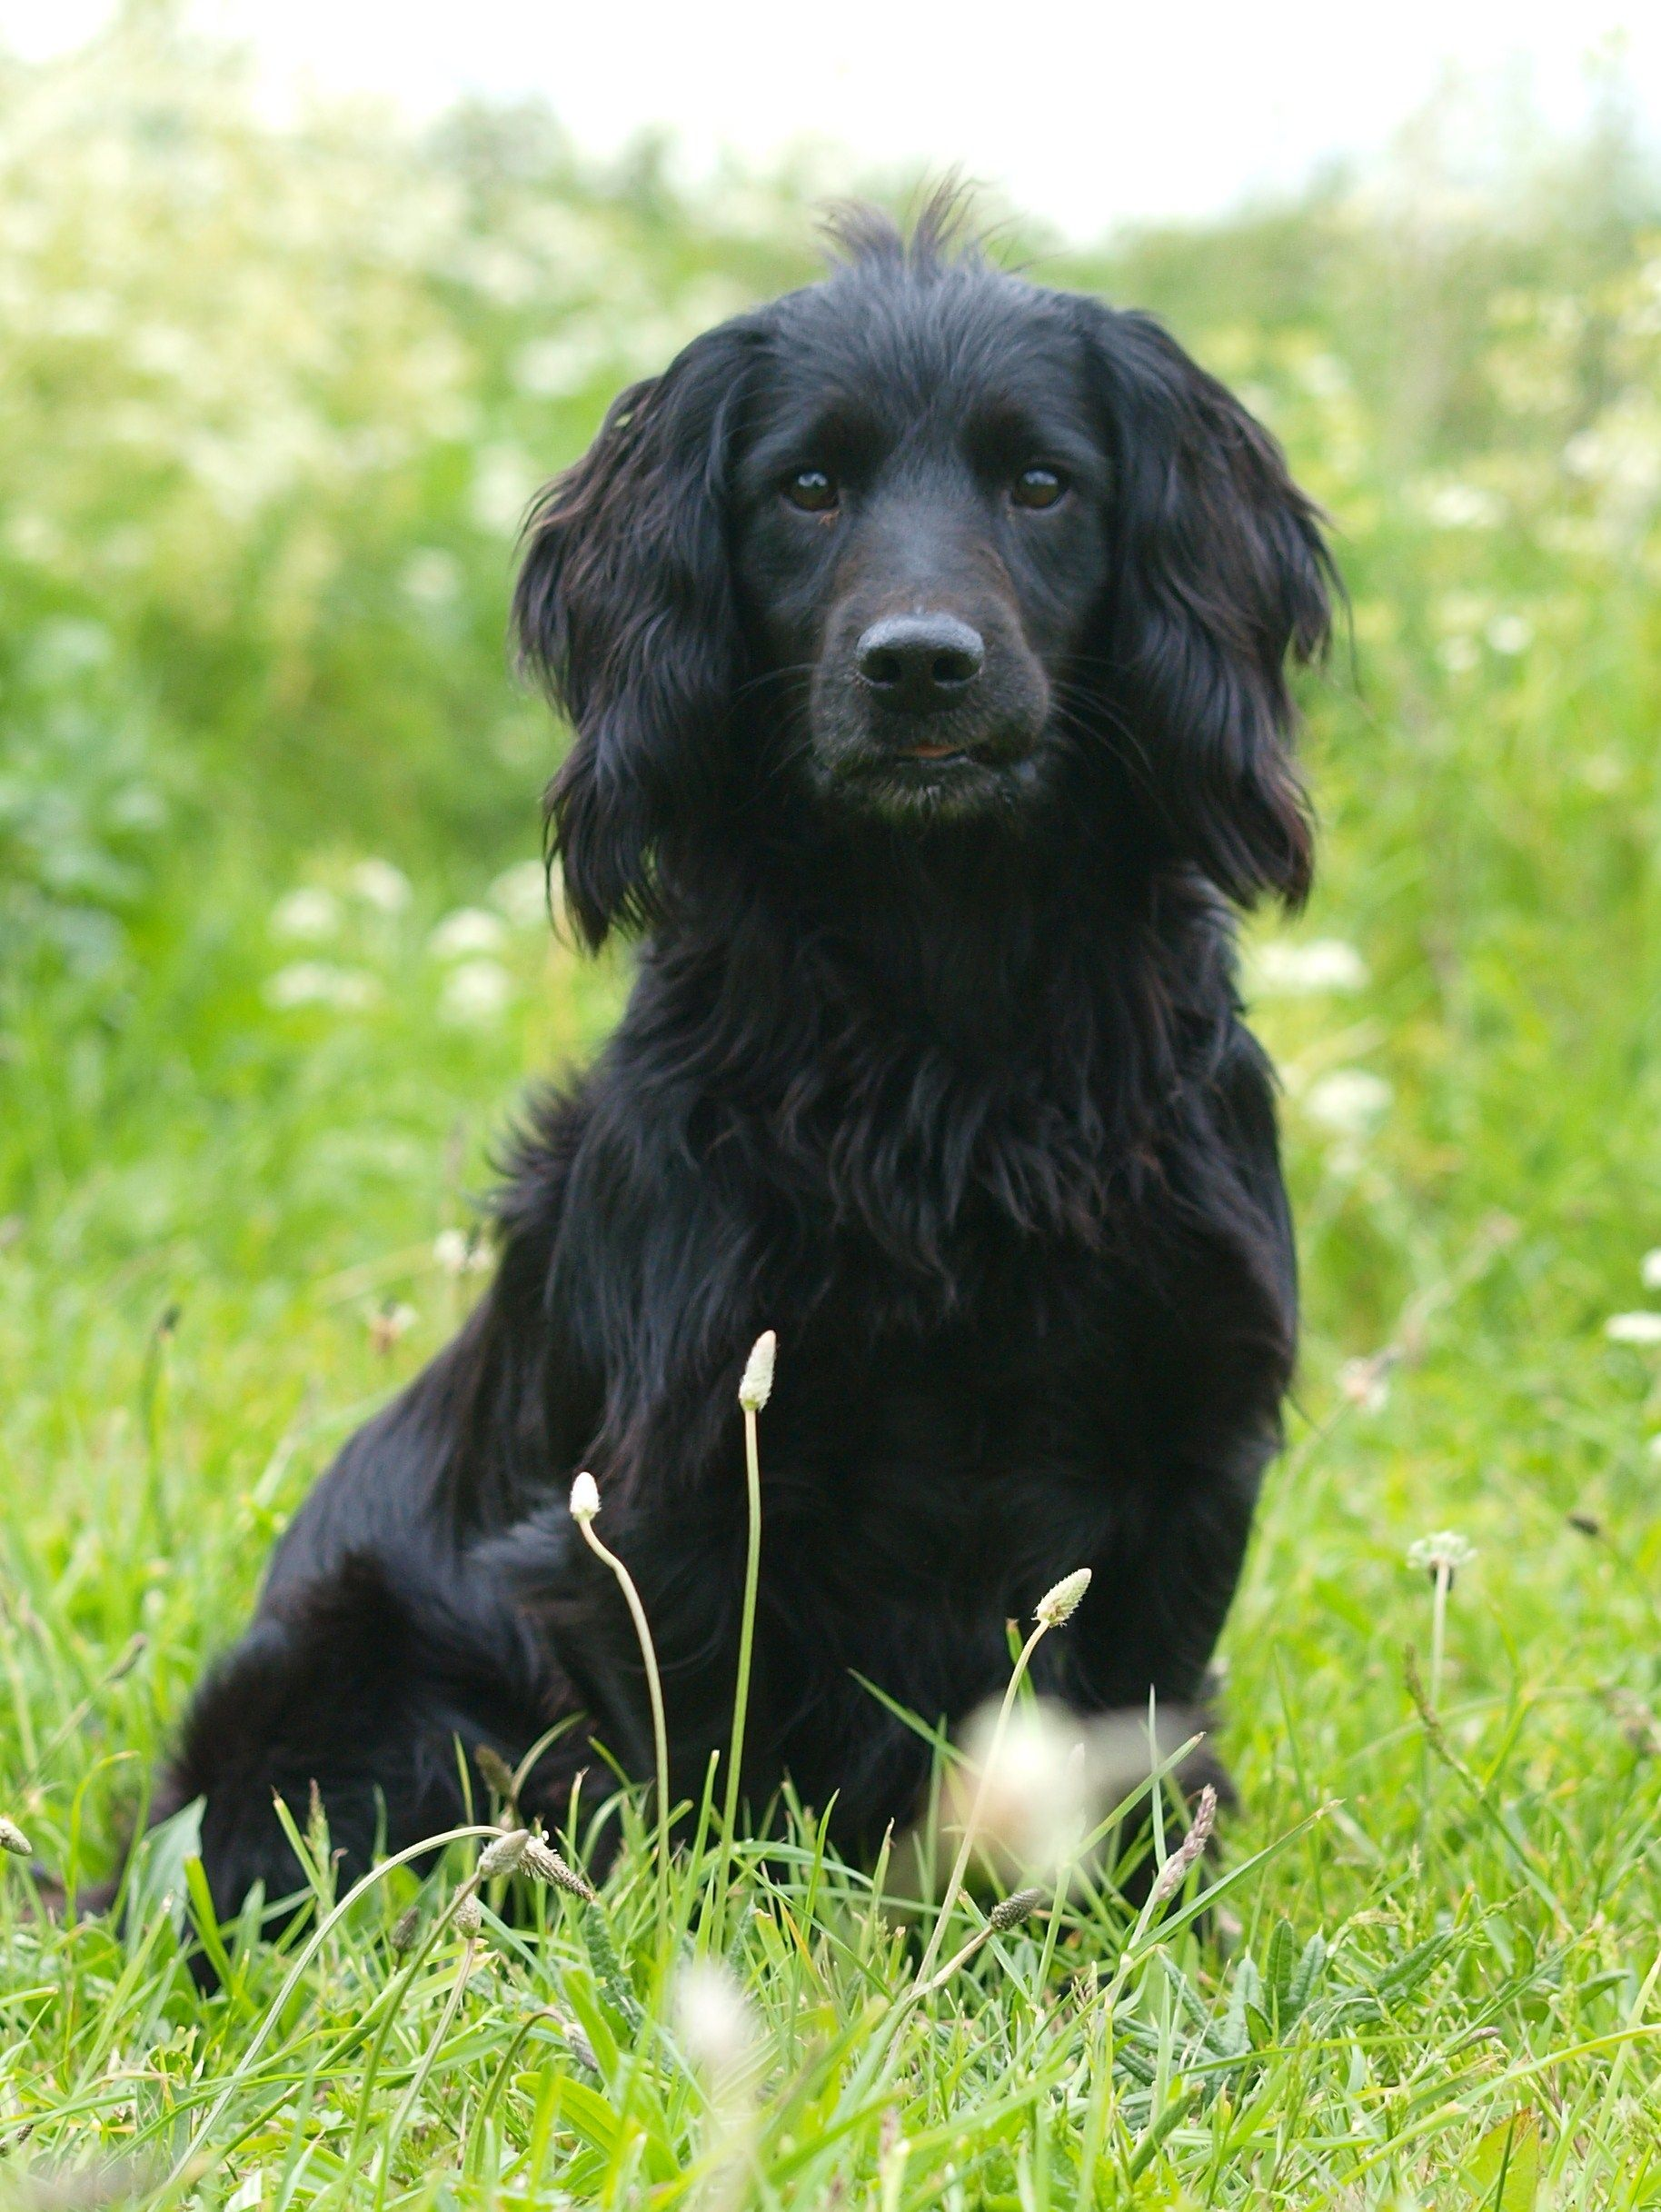 About Dogs Black Cocker Spaniel Puppies Spaniel Breeds